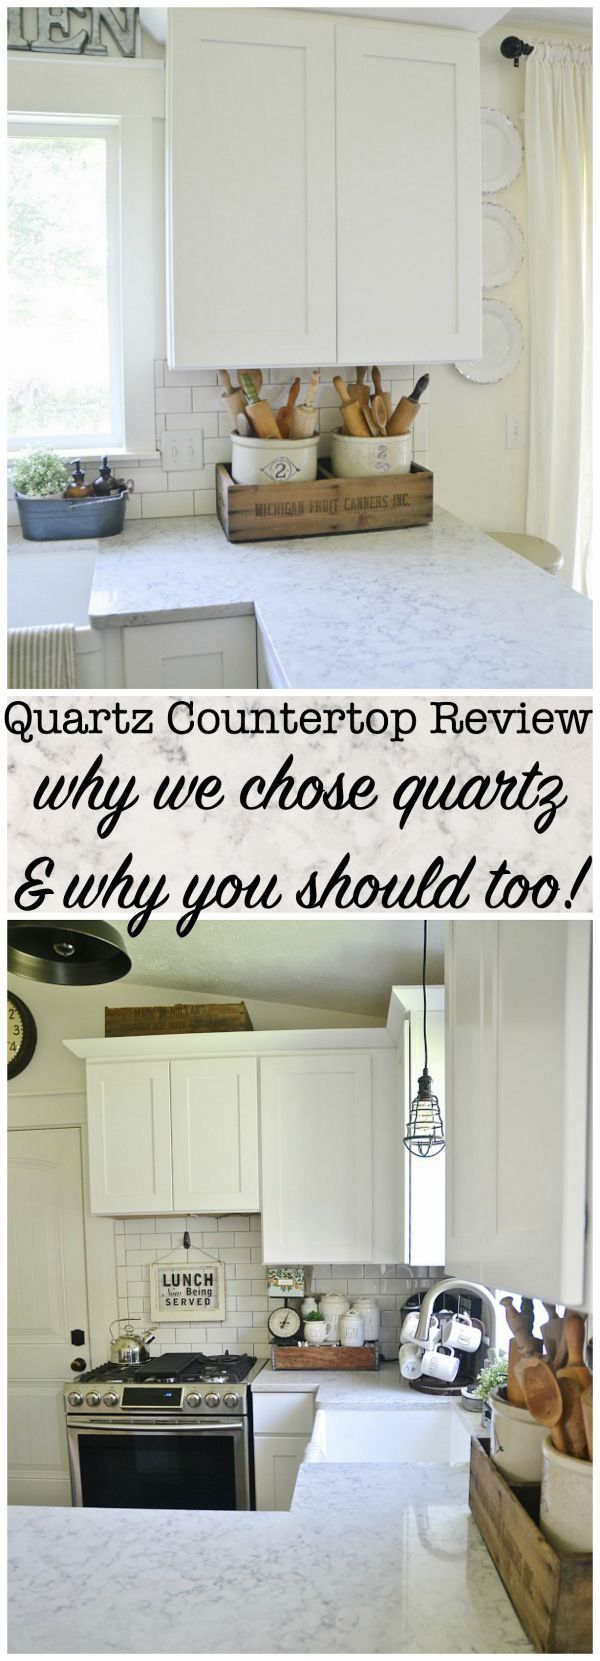 Grigio msi quartz denver shower doors amp denver granite countertops - Quartz Countertop Review Pros Cons